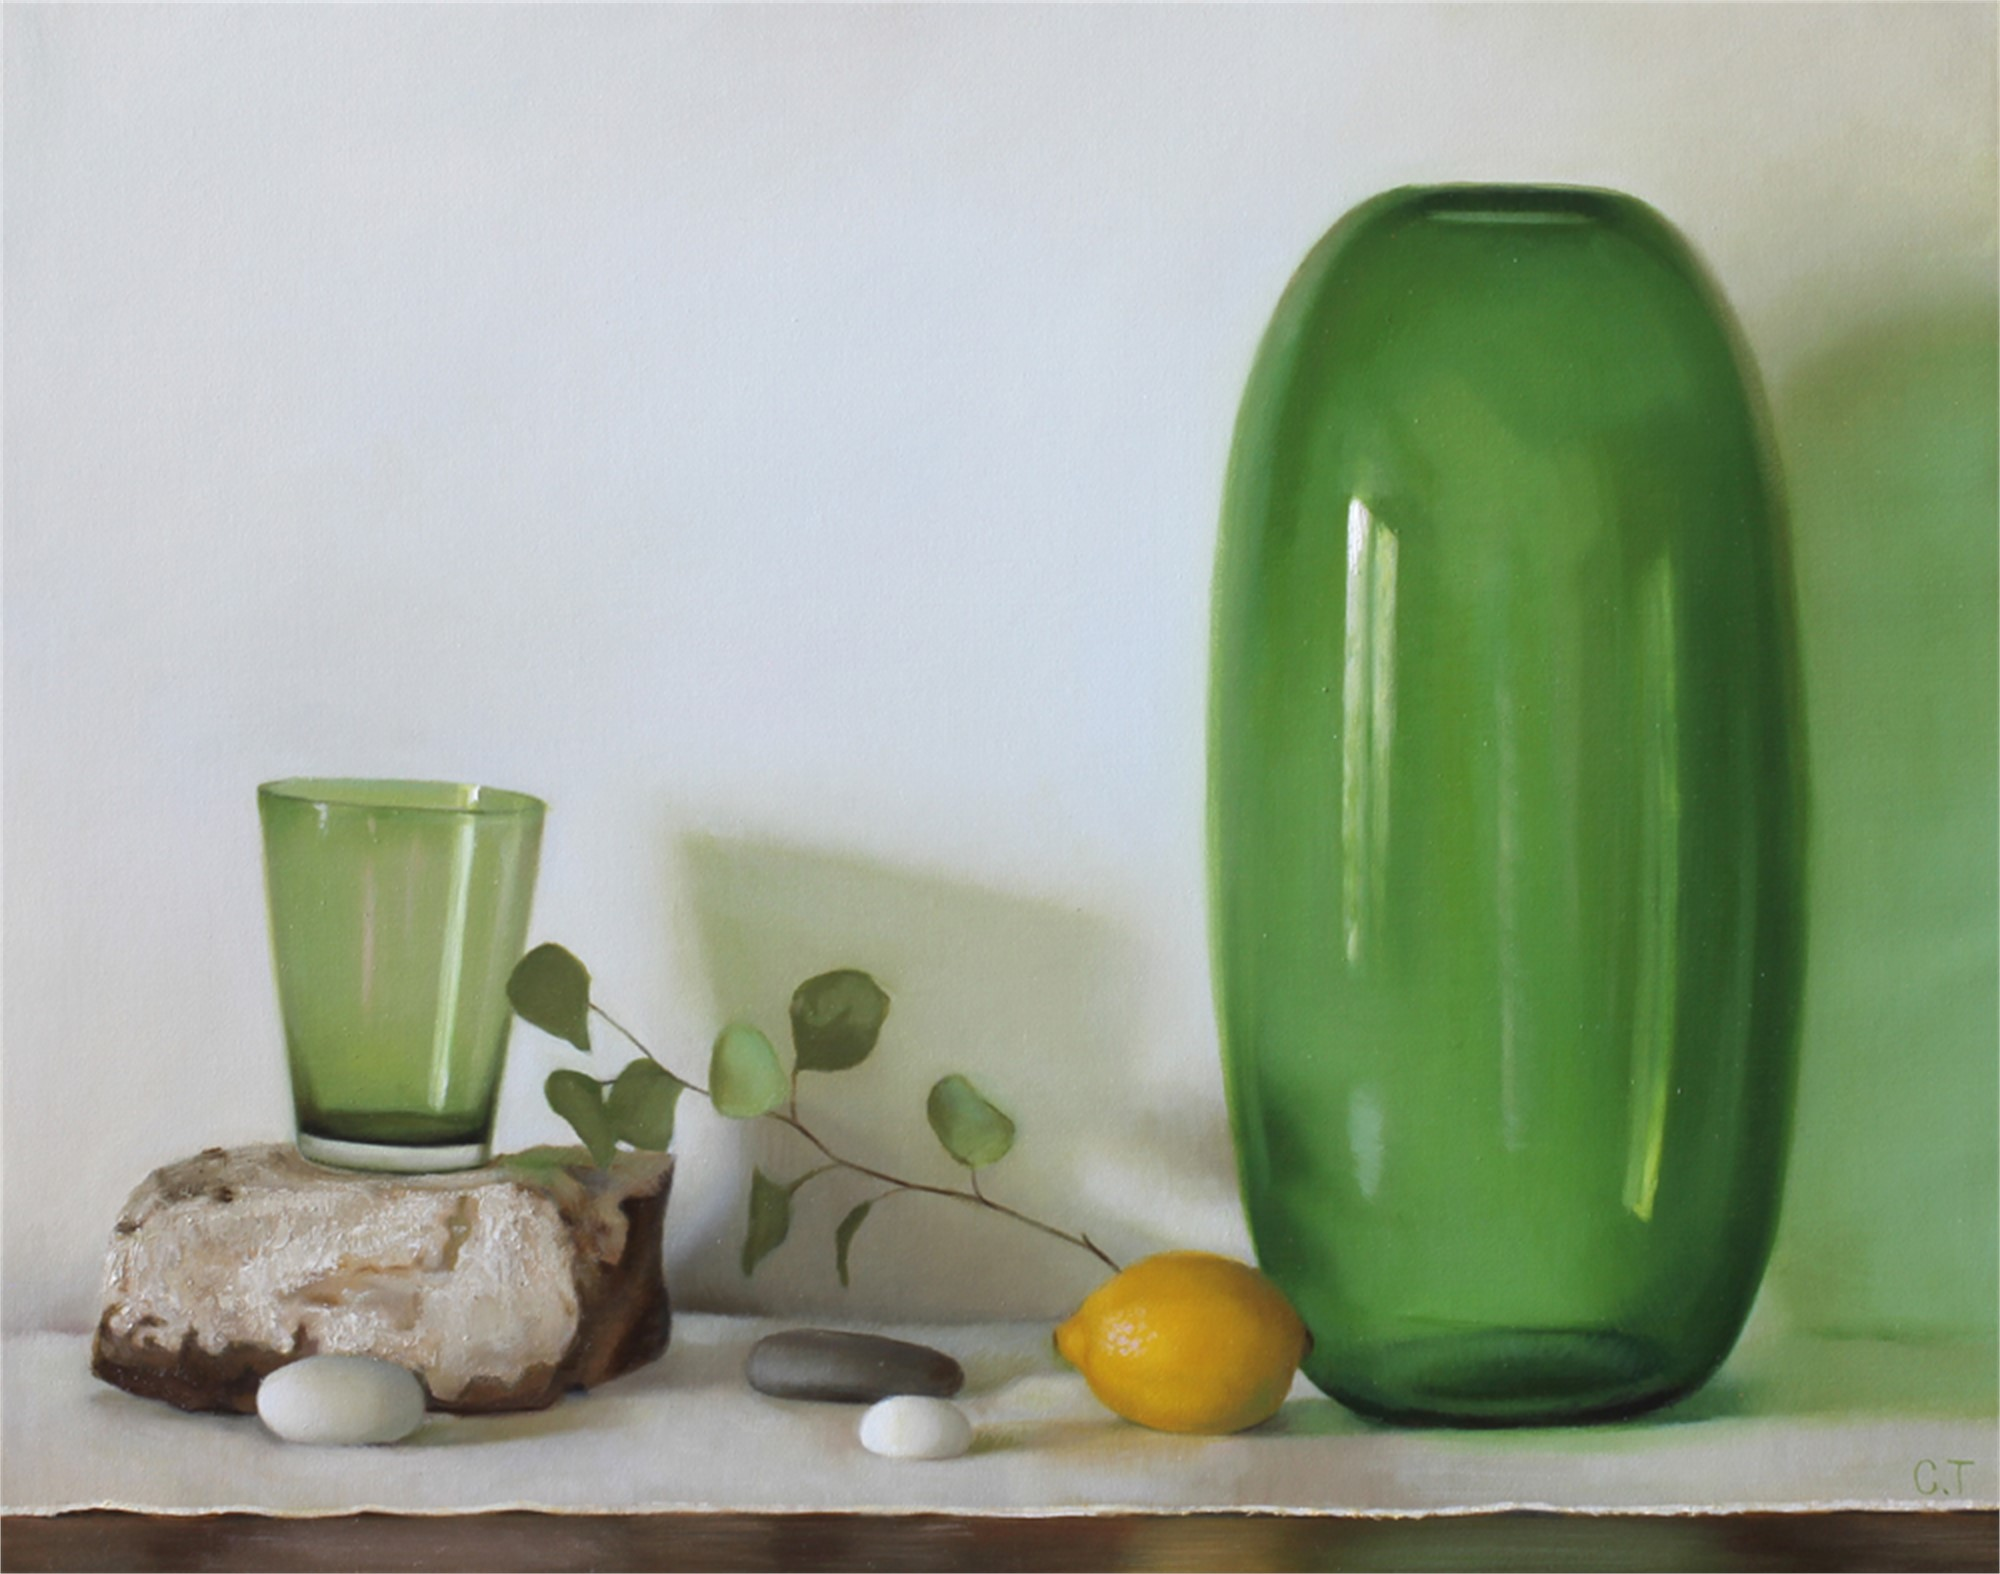 Green Glass by Cecilia Thorell